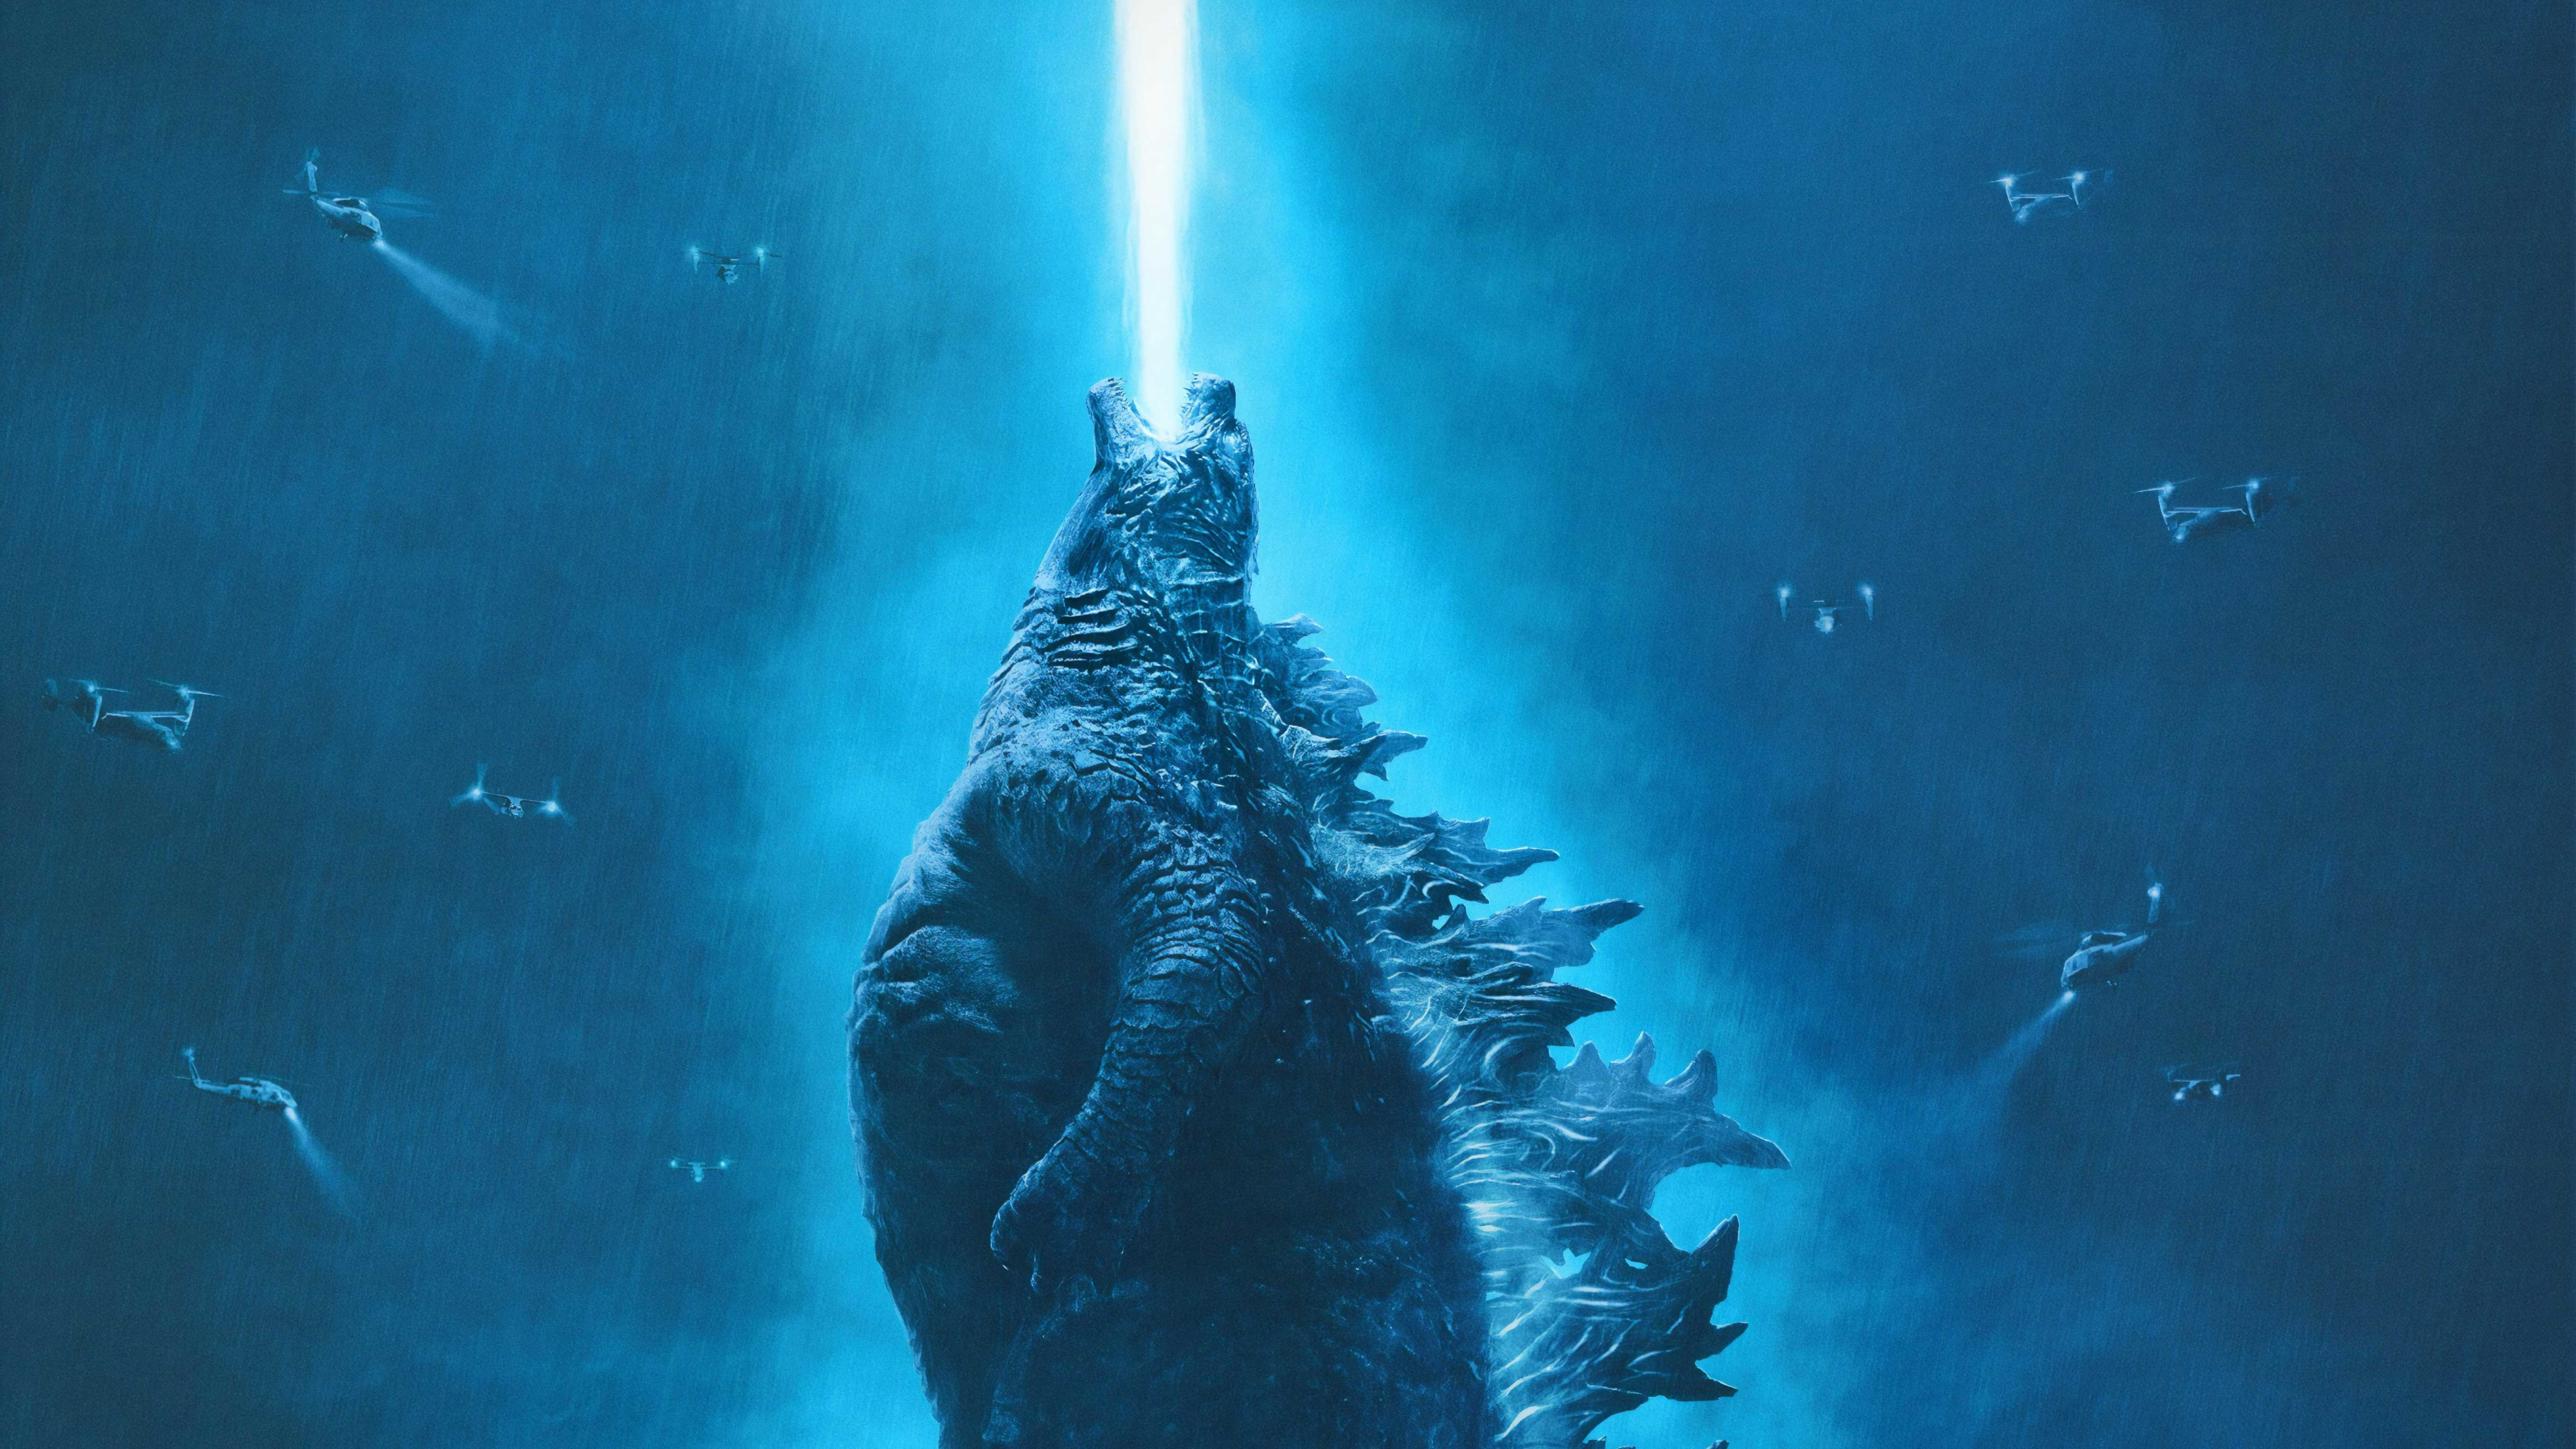 7680x4320 Godzilla King Of The Monsters 8k Wallpaper Hd Movies 4k Wallpapers Images Photos And Background